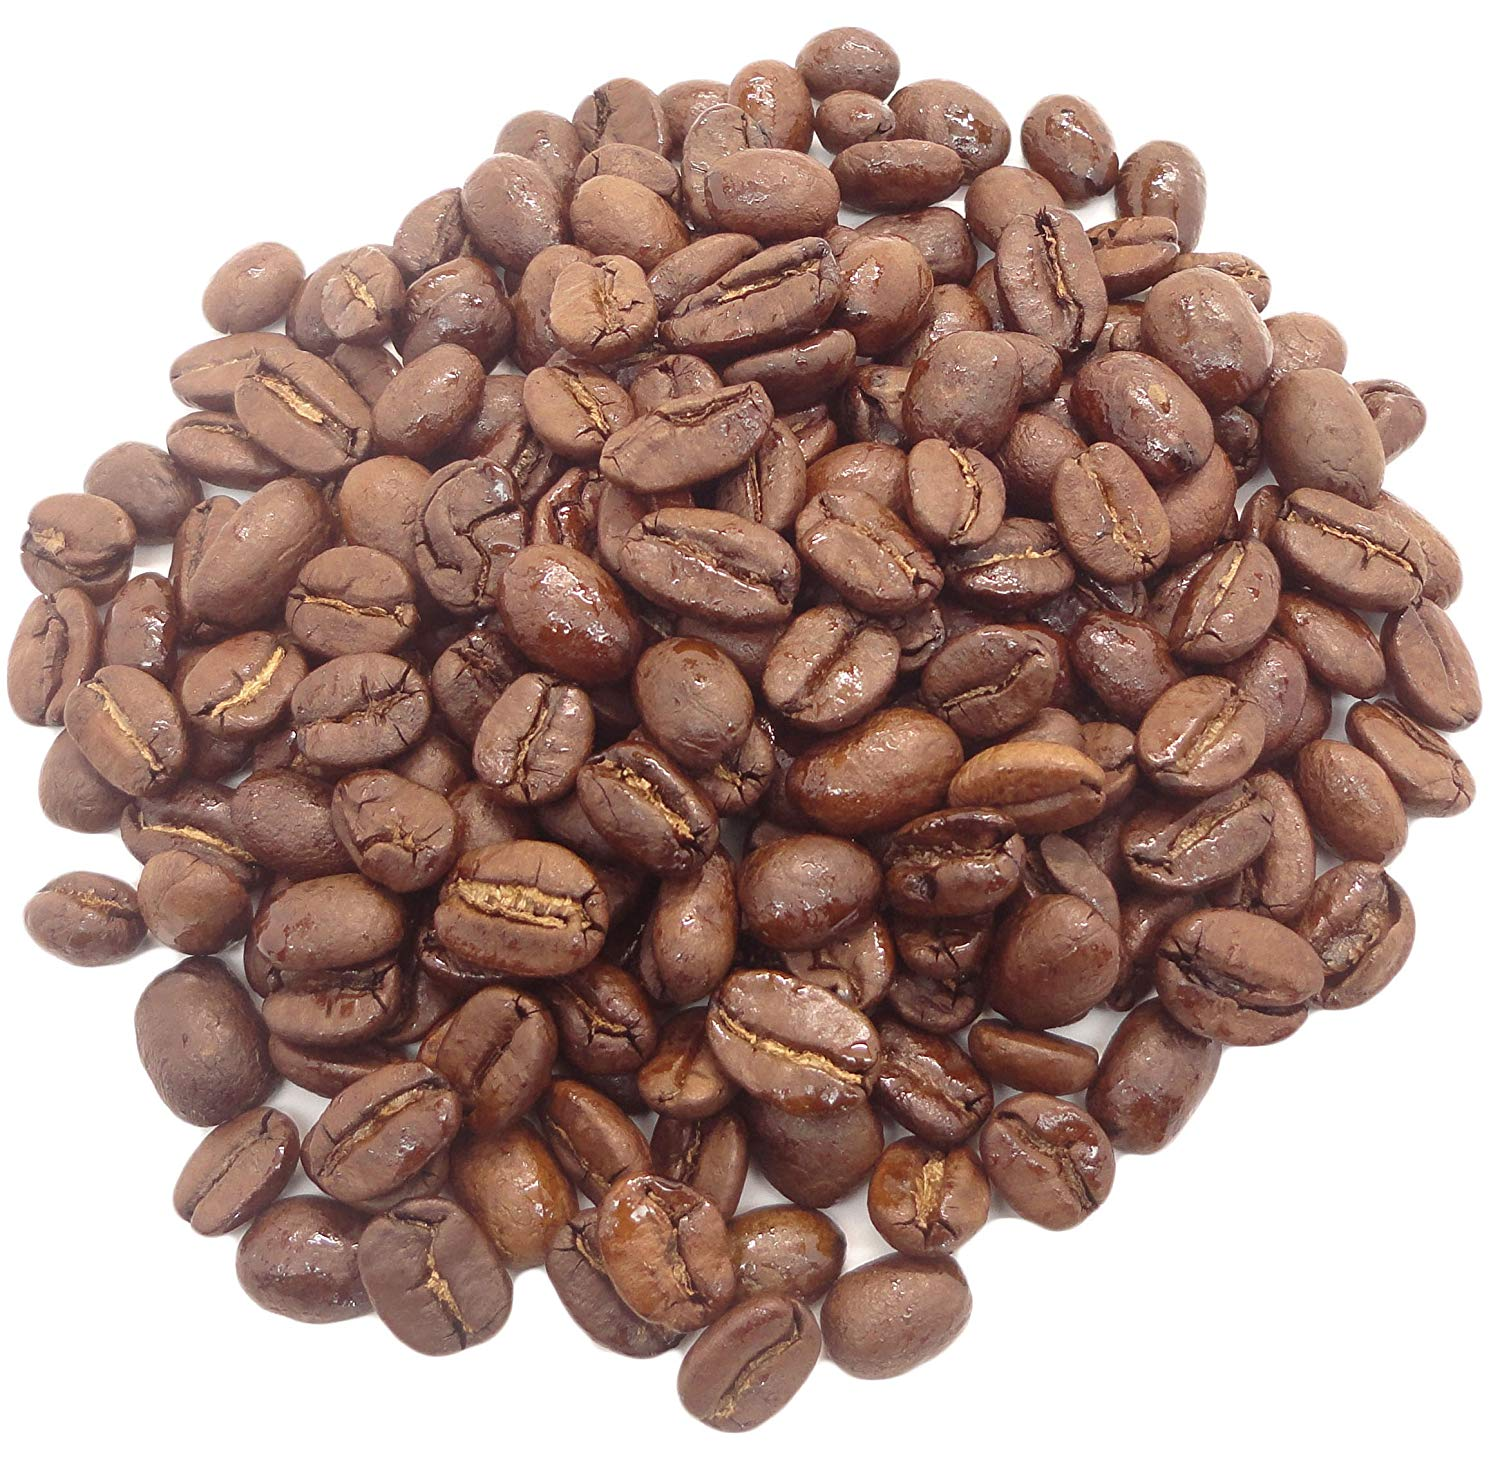 Jamaica Blue Mountain Coffee , Certified 100% Pure, Roasted Beans in a 1lb Vacuum Sealed Re-closable Bag with one way air valve.